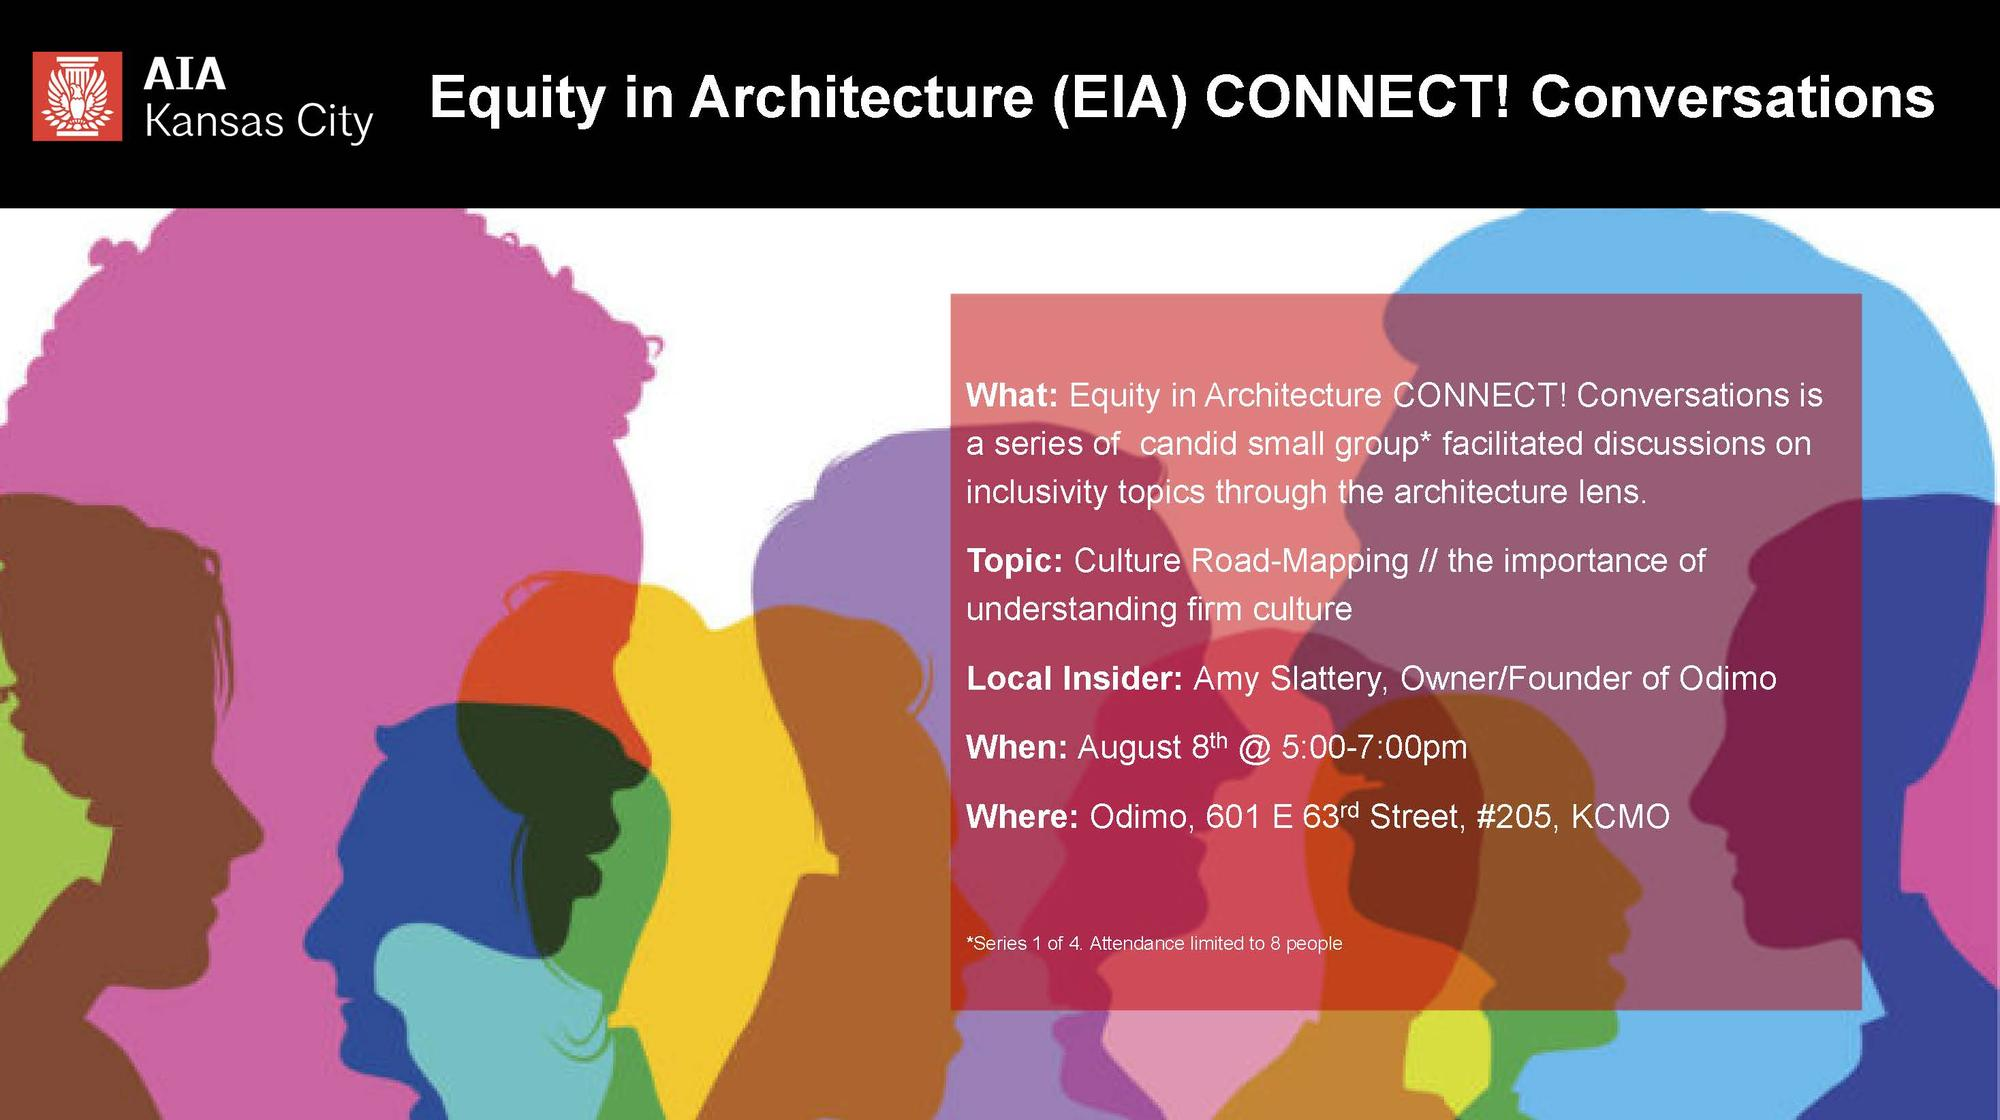 Equity in Architecture CONNECT! Conversations